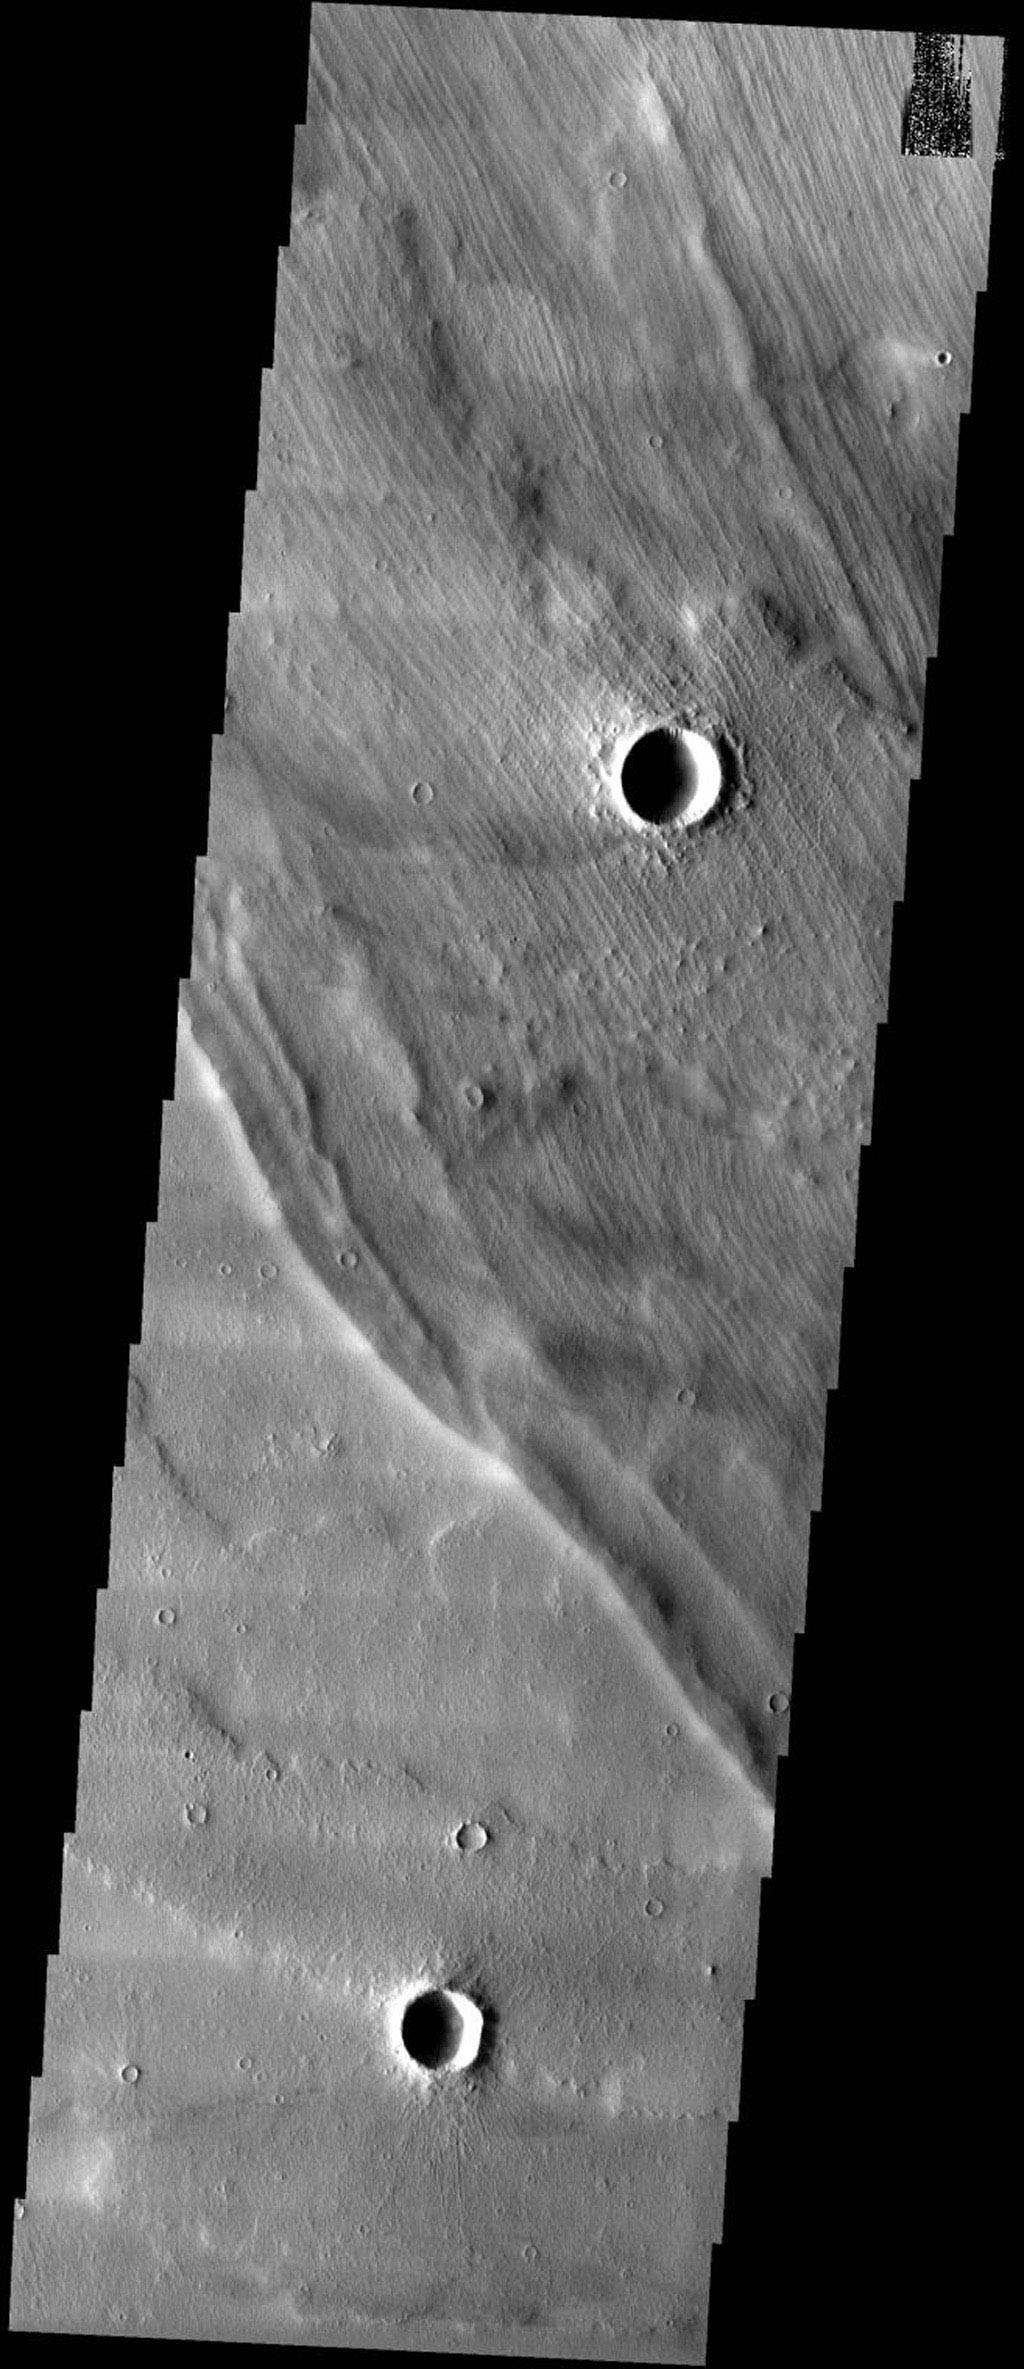 This image taken by NASA's 2001 Mars Odyssey shows strange-looking grooved terrain overlies lava flows off of the western flank of the giant shield volcano Arsia Mons on Mars.